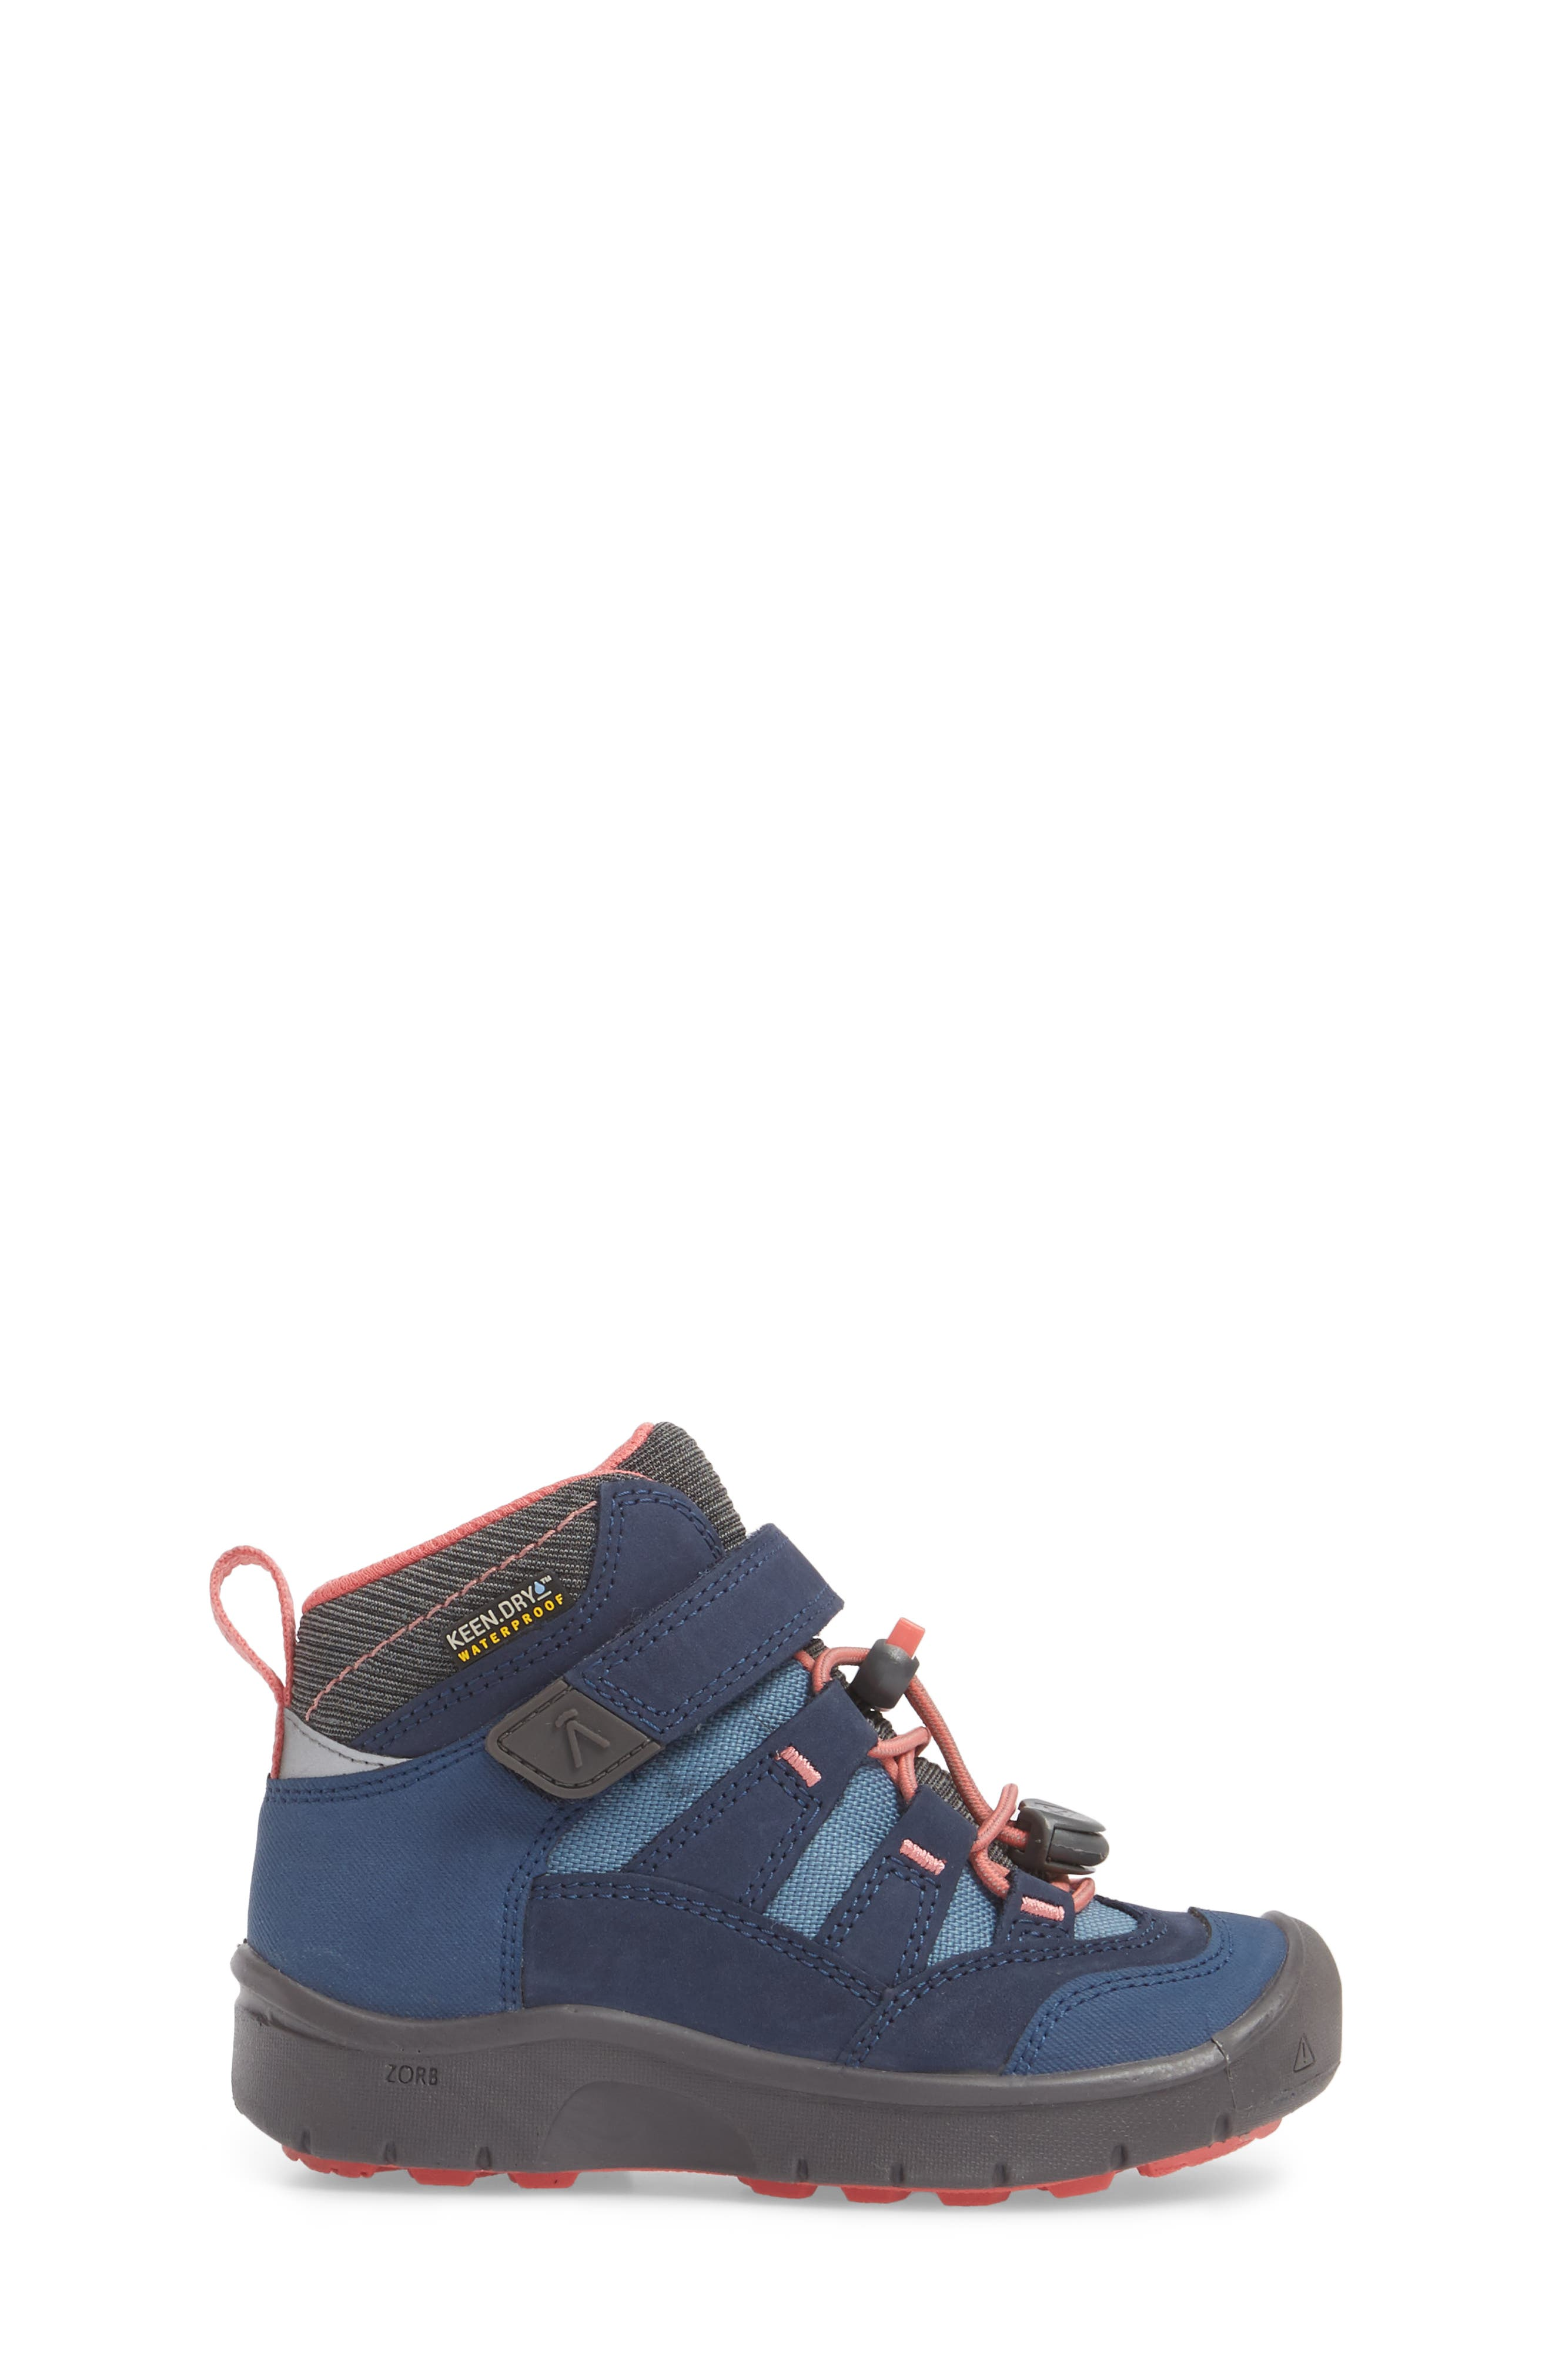 Hikeport Strap Waterproof Mid Boot,                             Alternate thumbnail 3, color,                             Dress Blues/ Sugar Coral